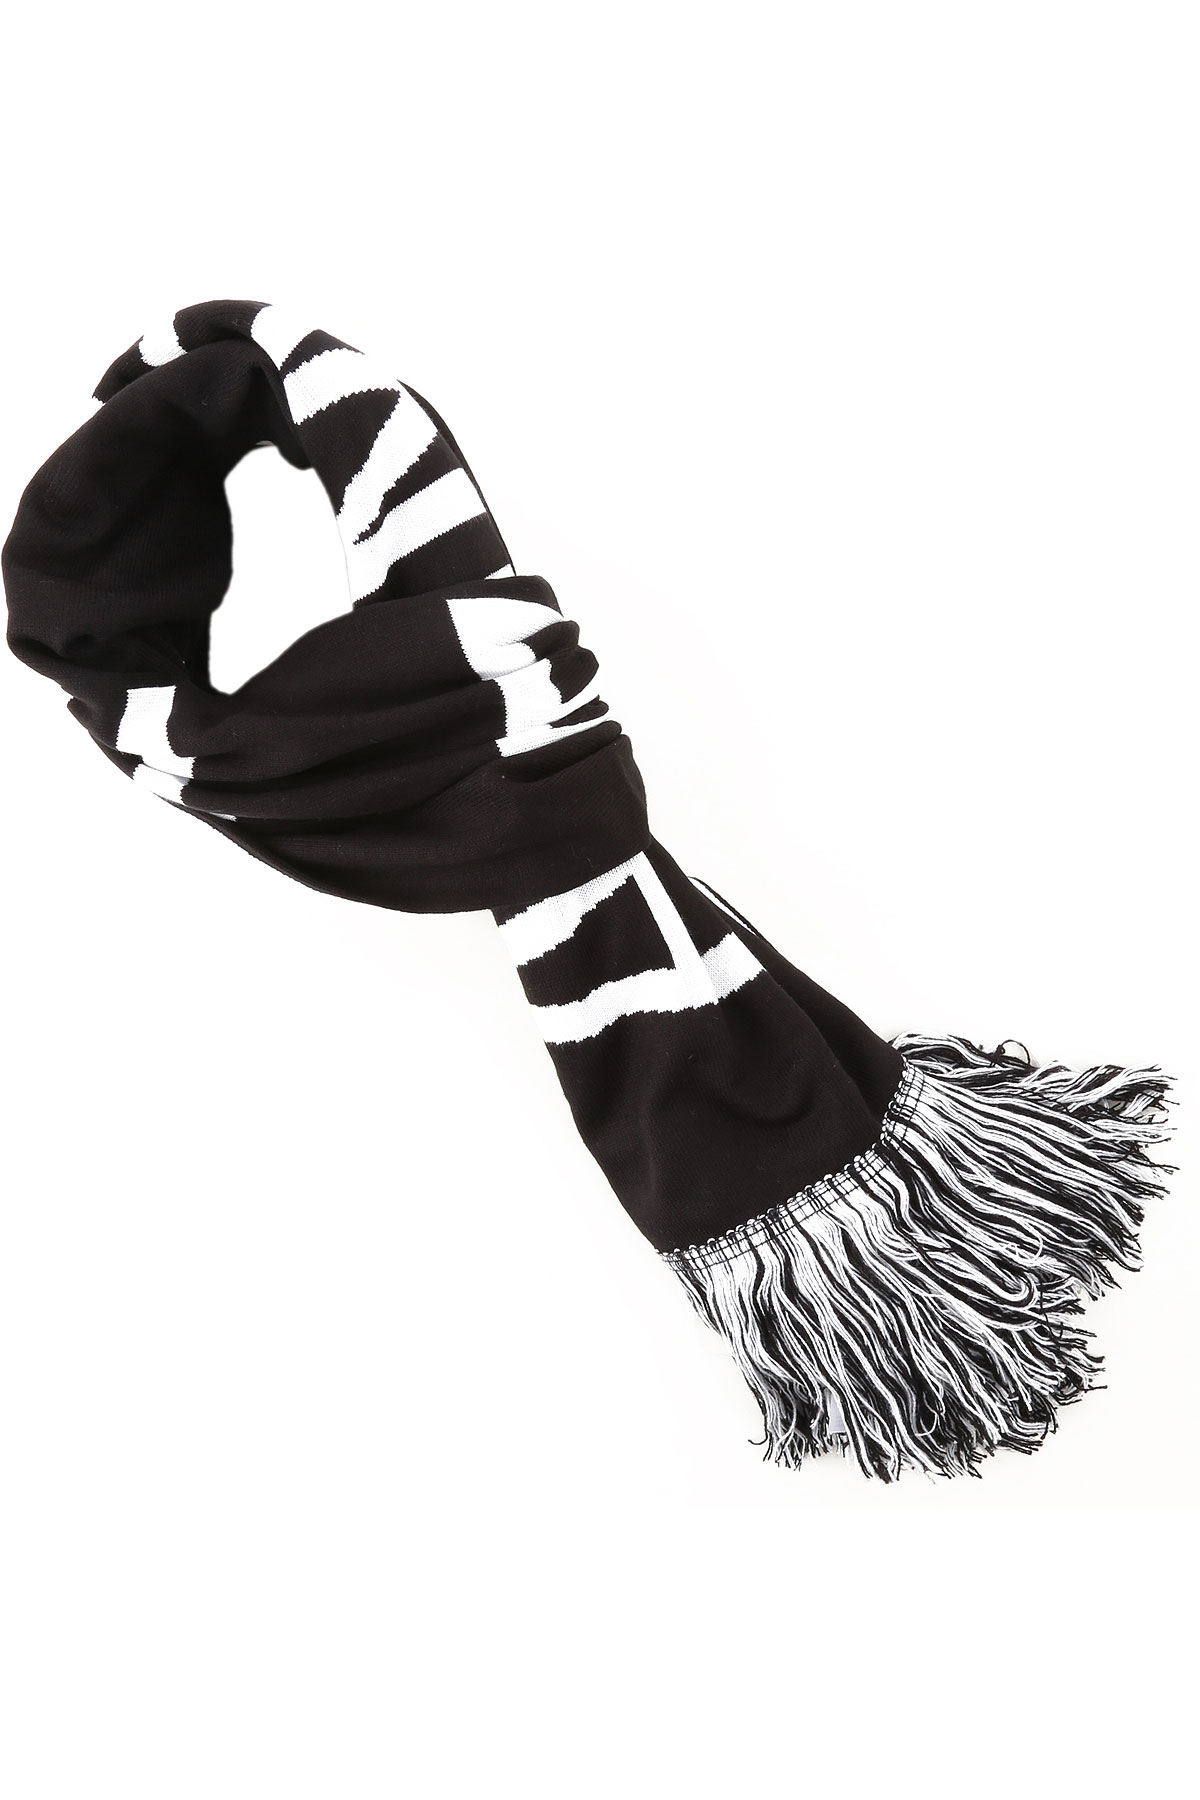 Armani Exchange Scarf for Men On Sale in Outlet, Black, Cotton, 2019